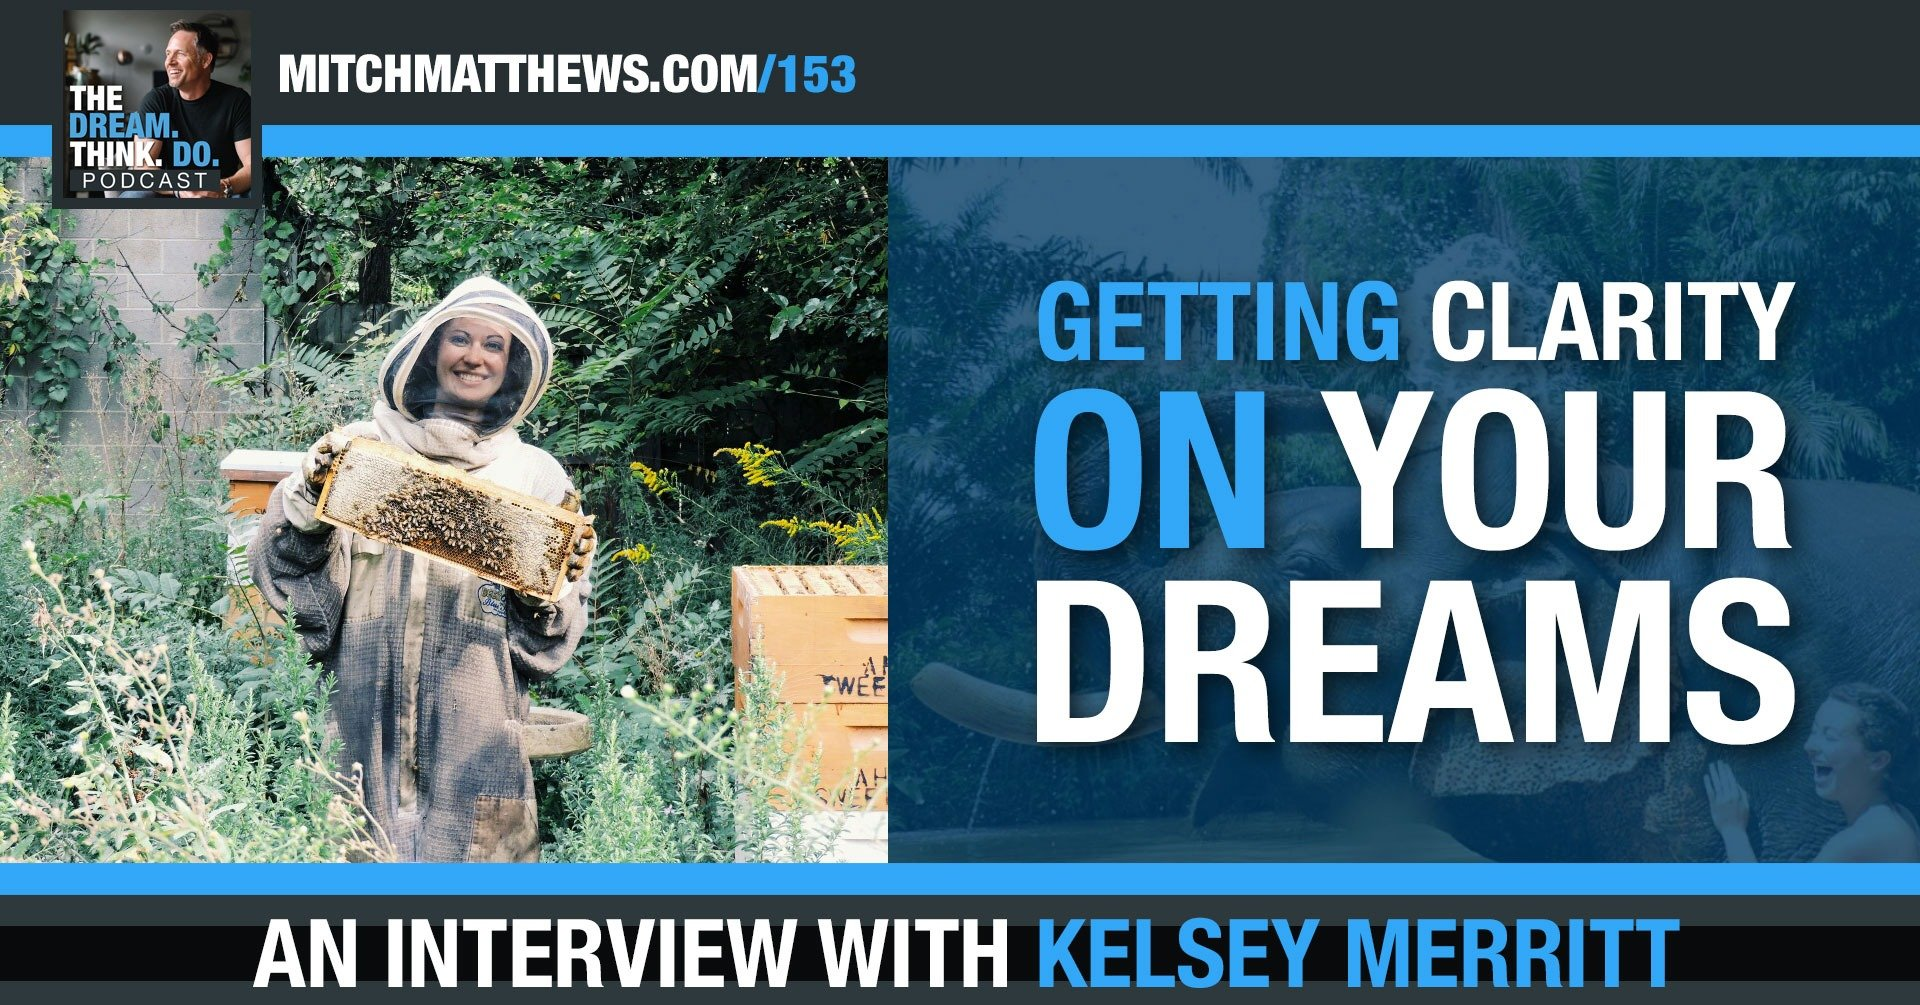 An interview with Kelsey Merritt